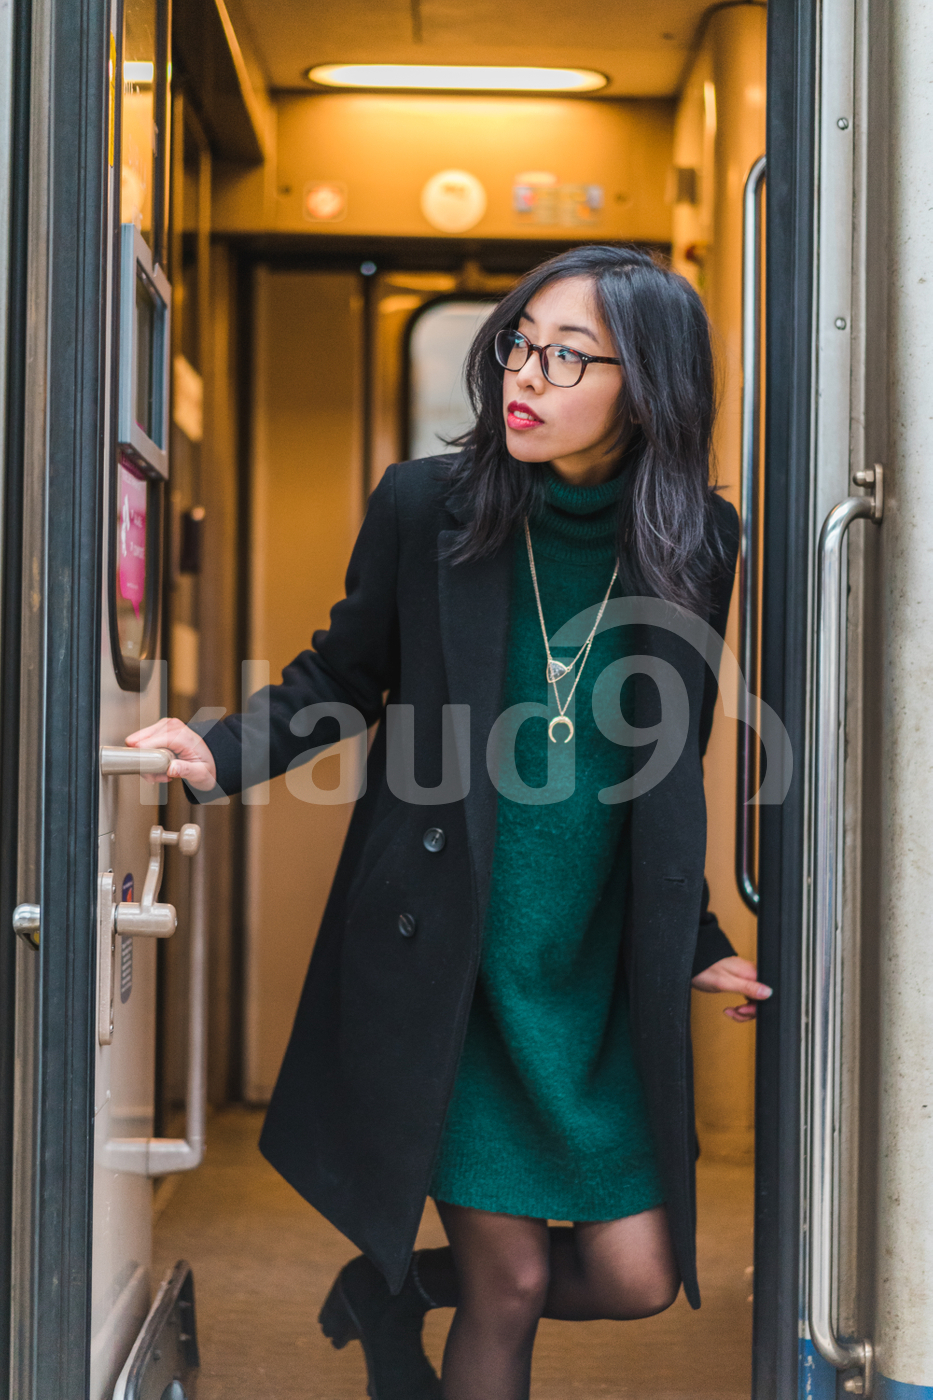 Asian woman leaving a train